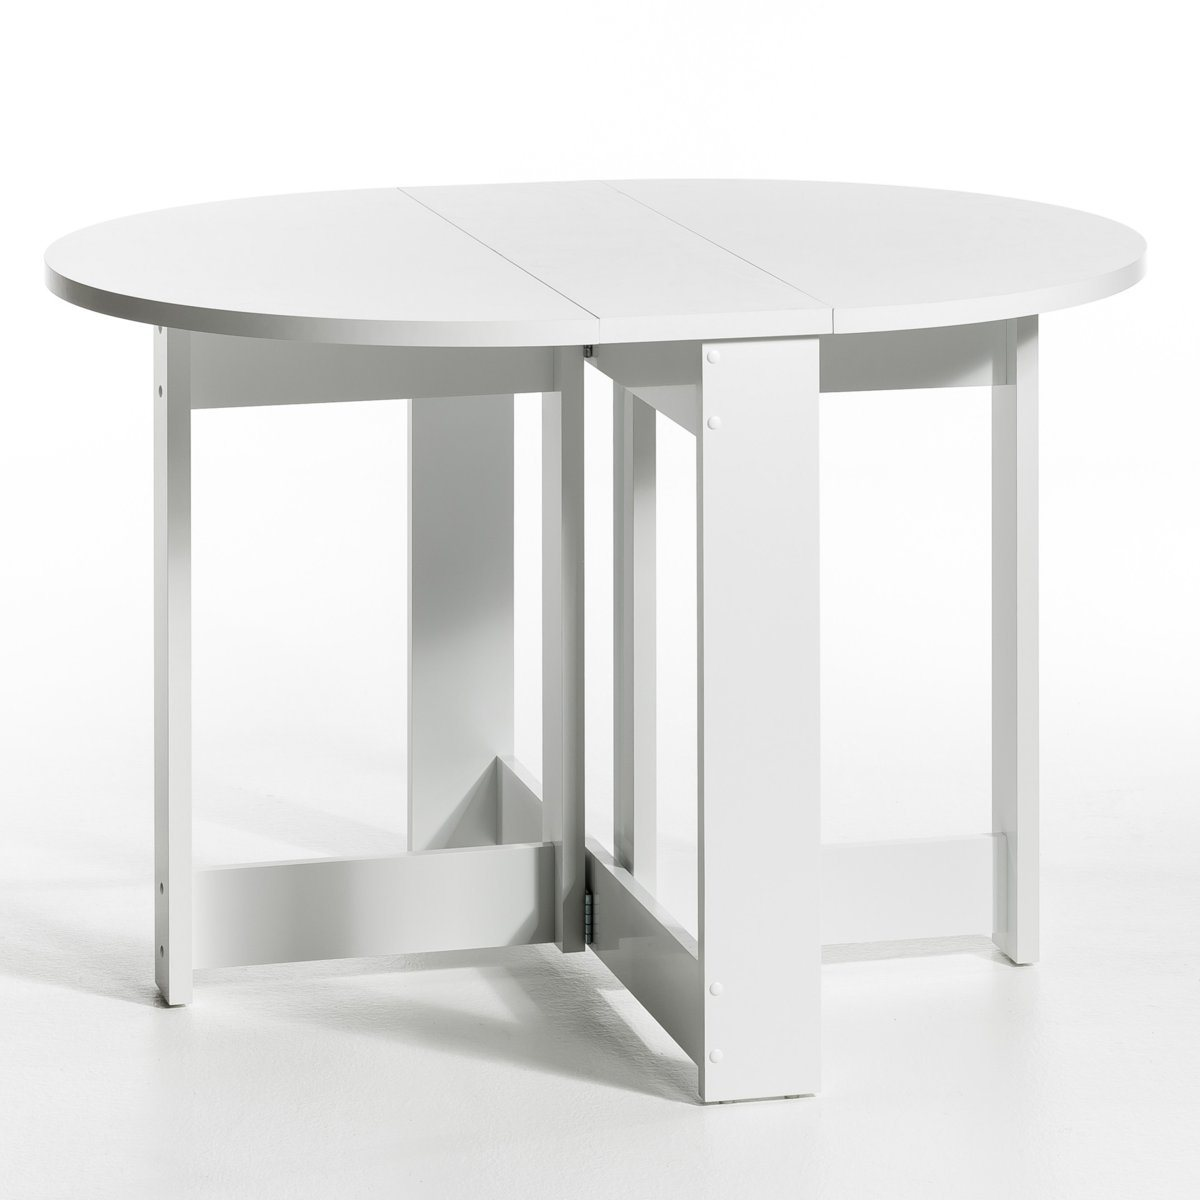 Table de jardin pliante ronde topiwall for Table cuisine ronde pliante